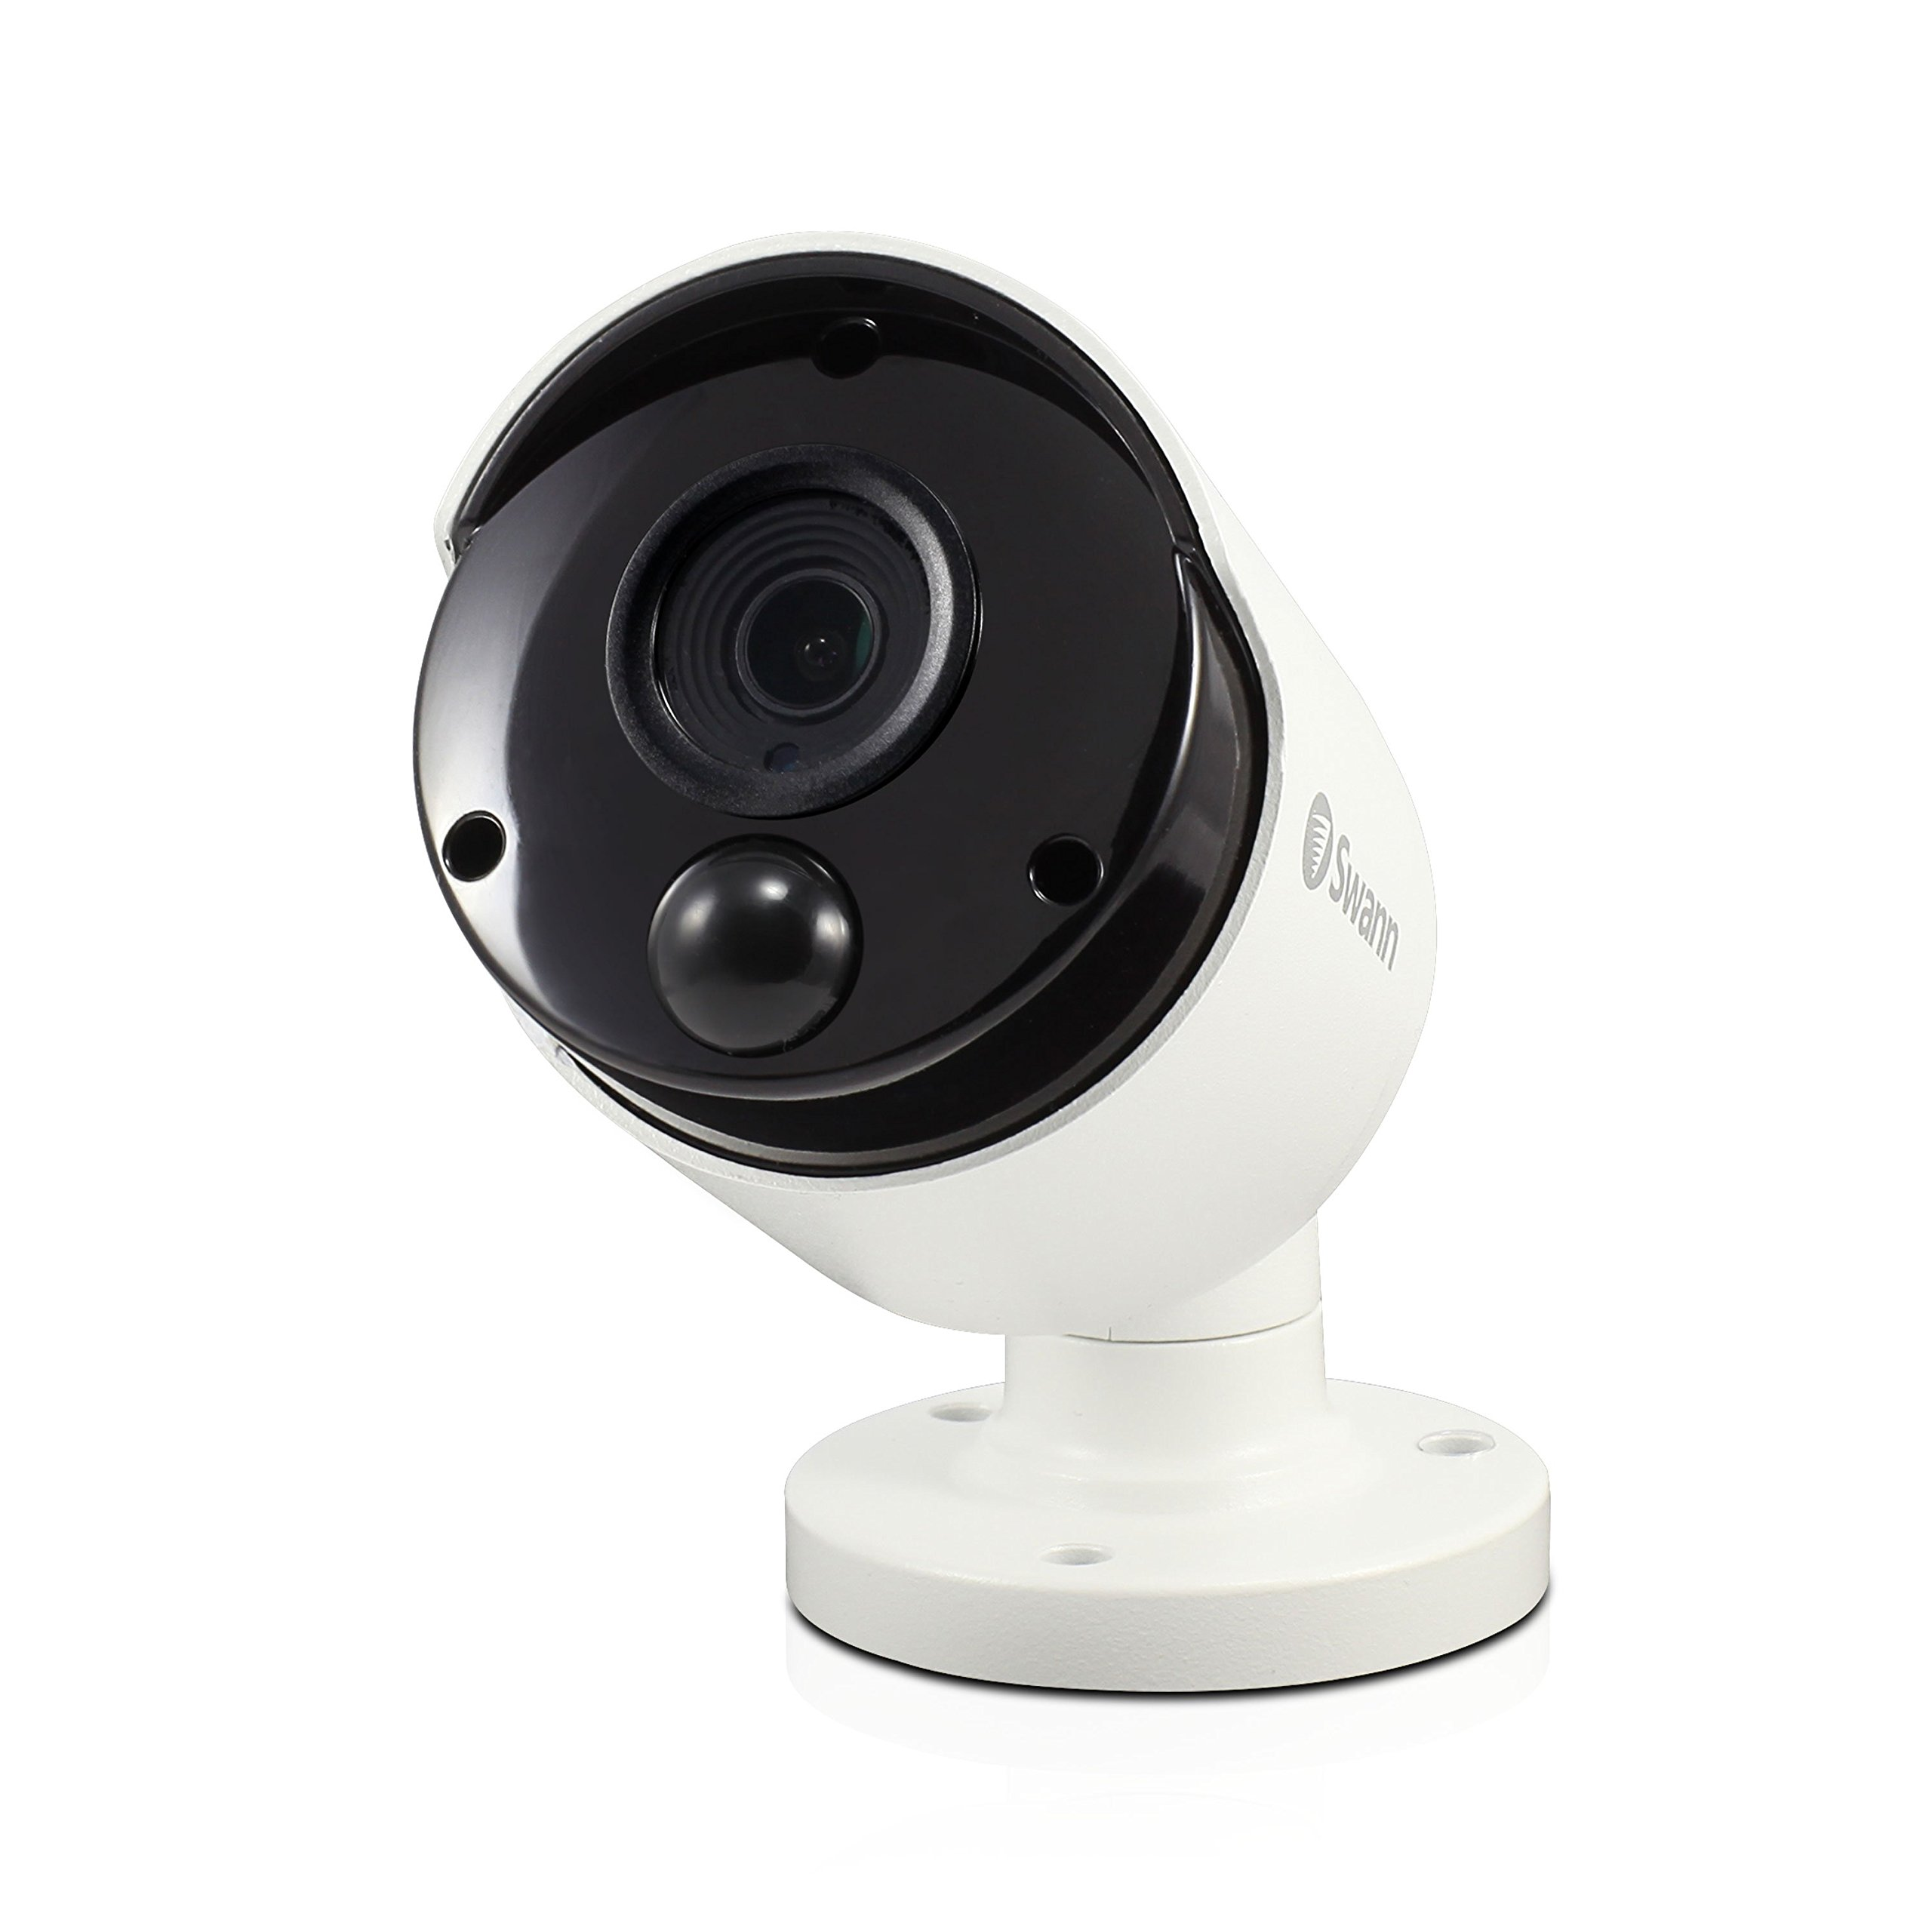 Swann 5MP Bullet DVR Security Camera with Heat & Motion Sensing + Night Vision by Swann